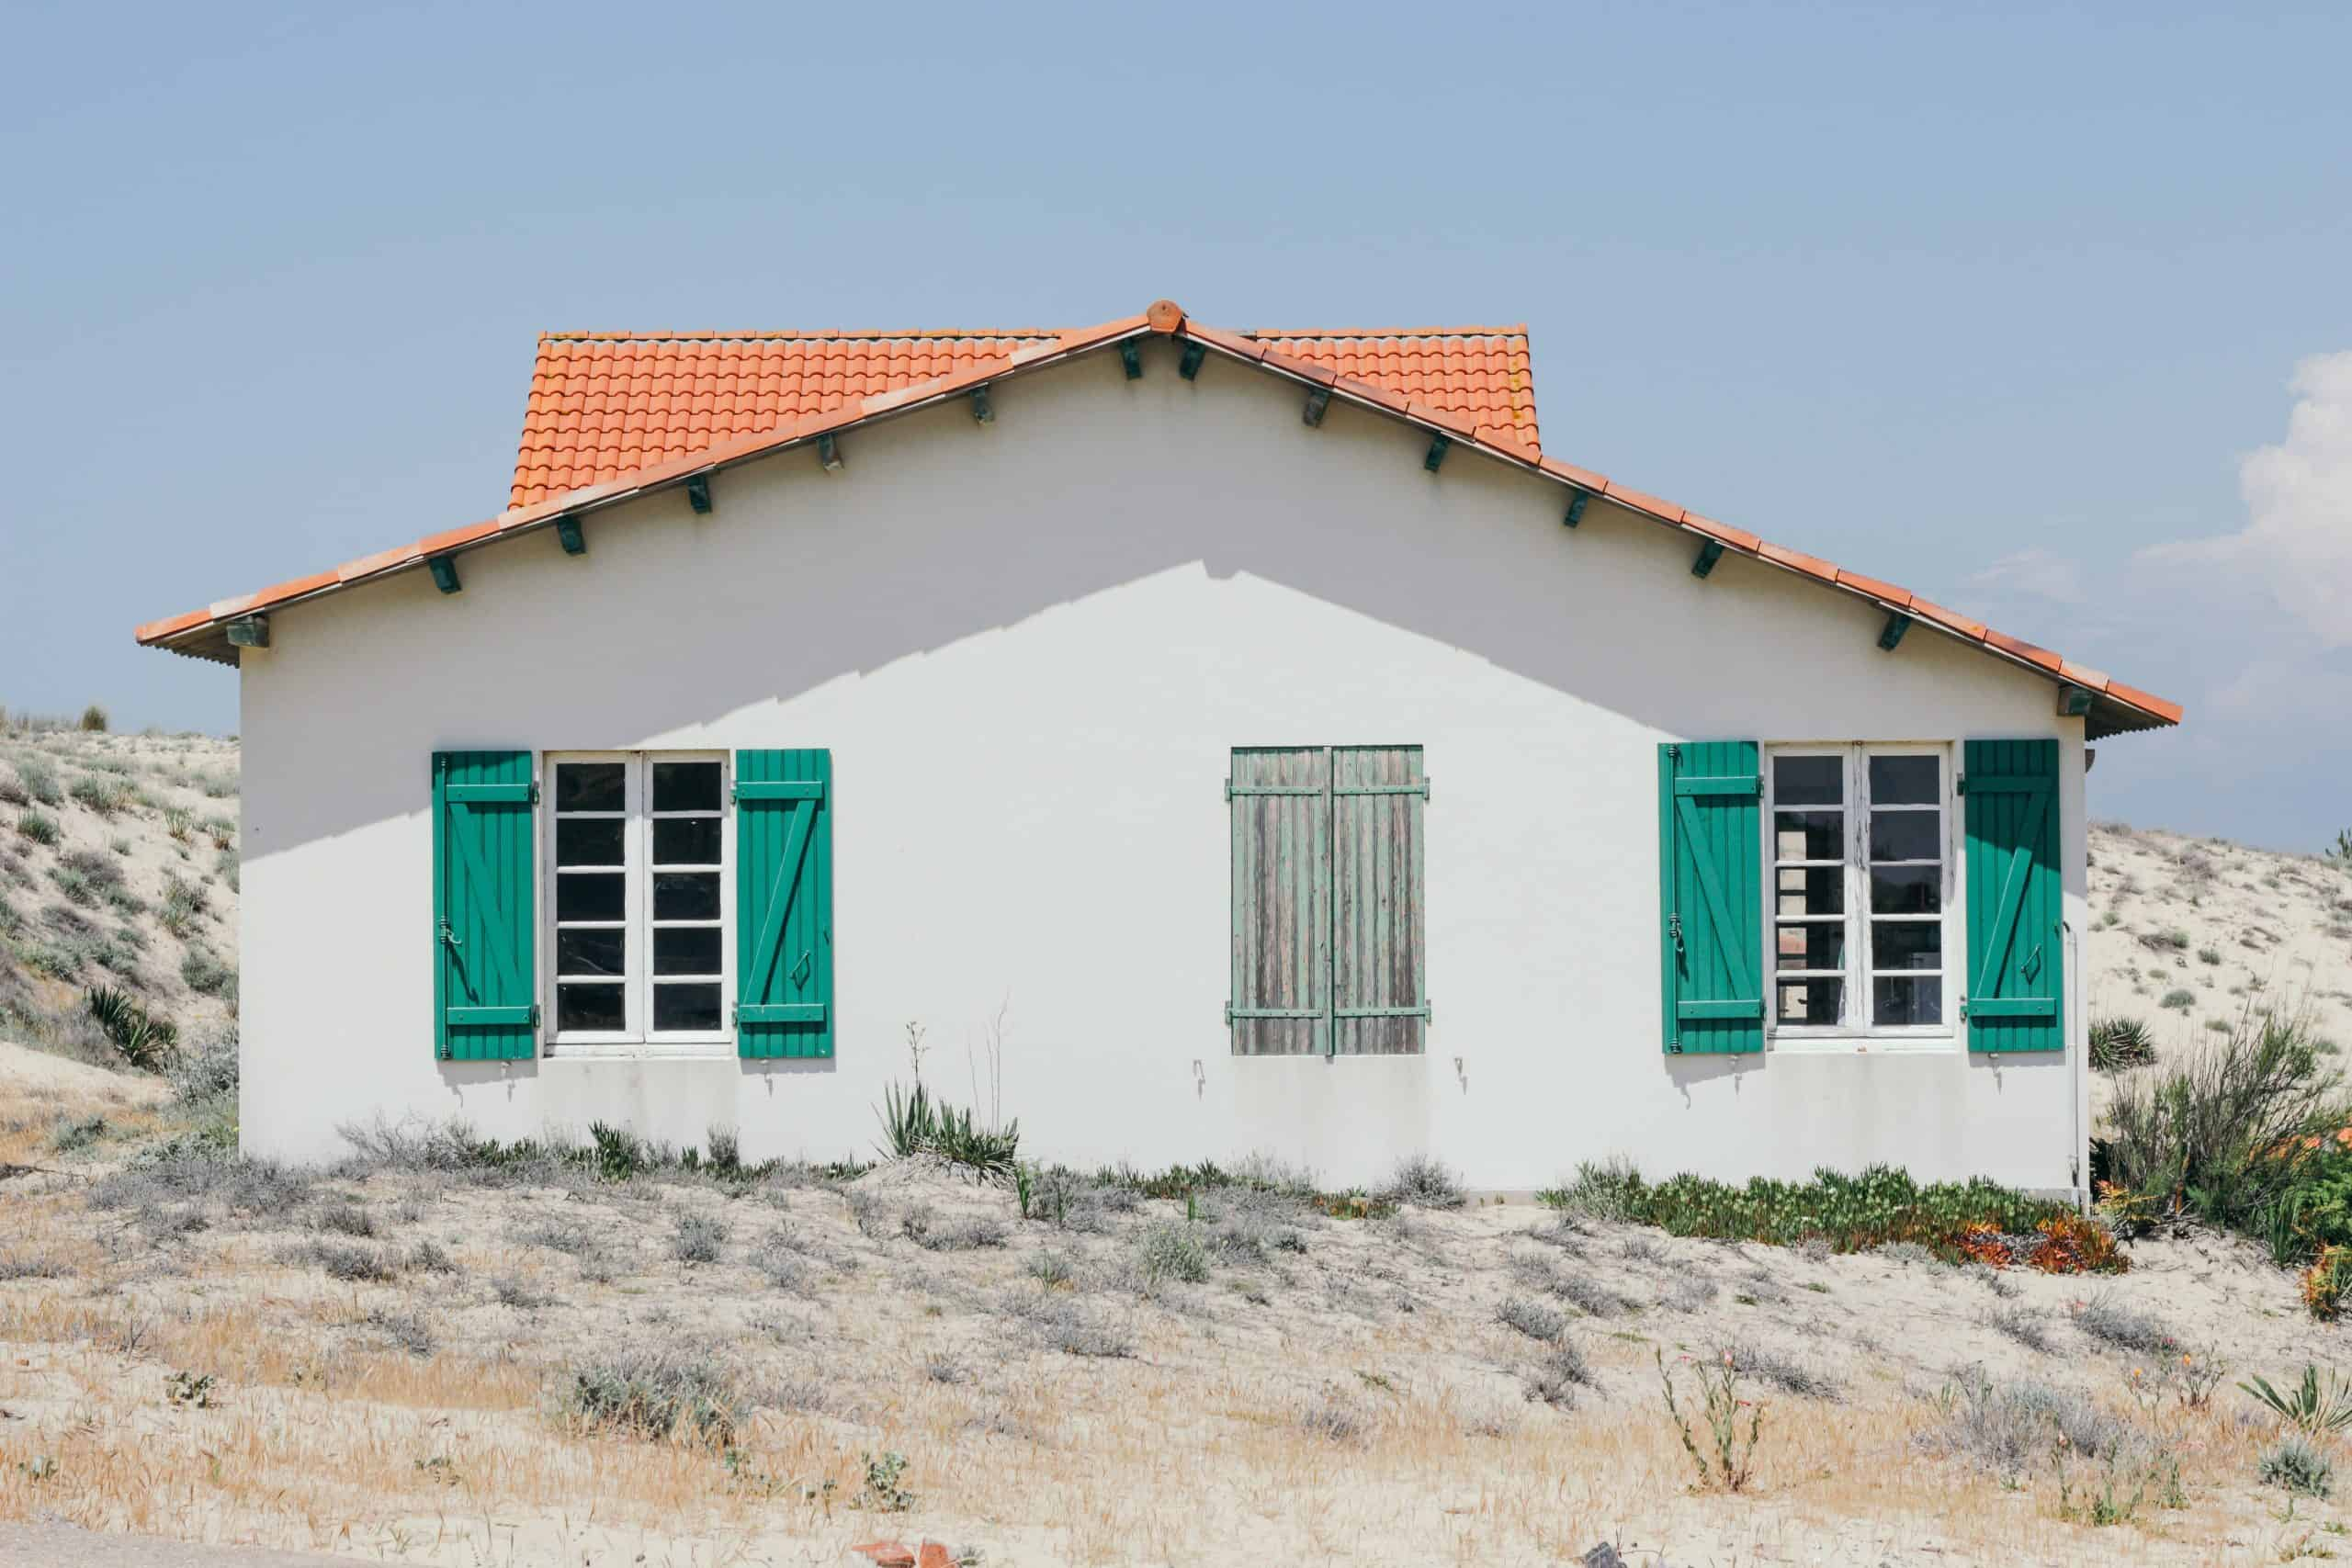 How much does you vacant property actually cost you?